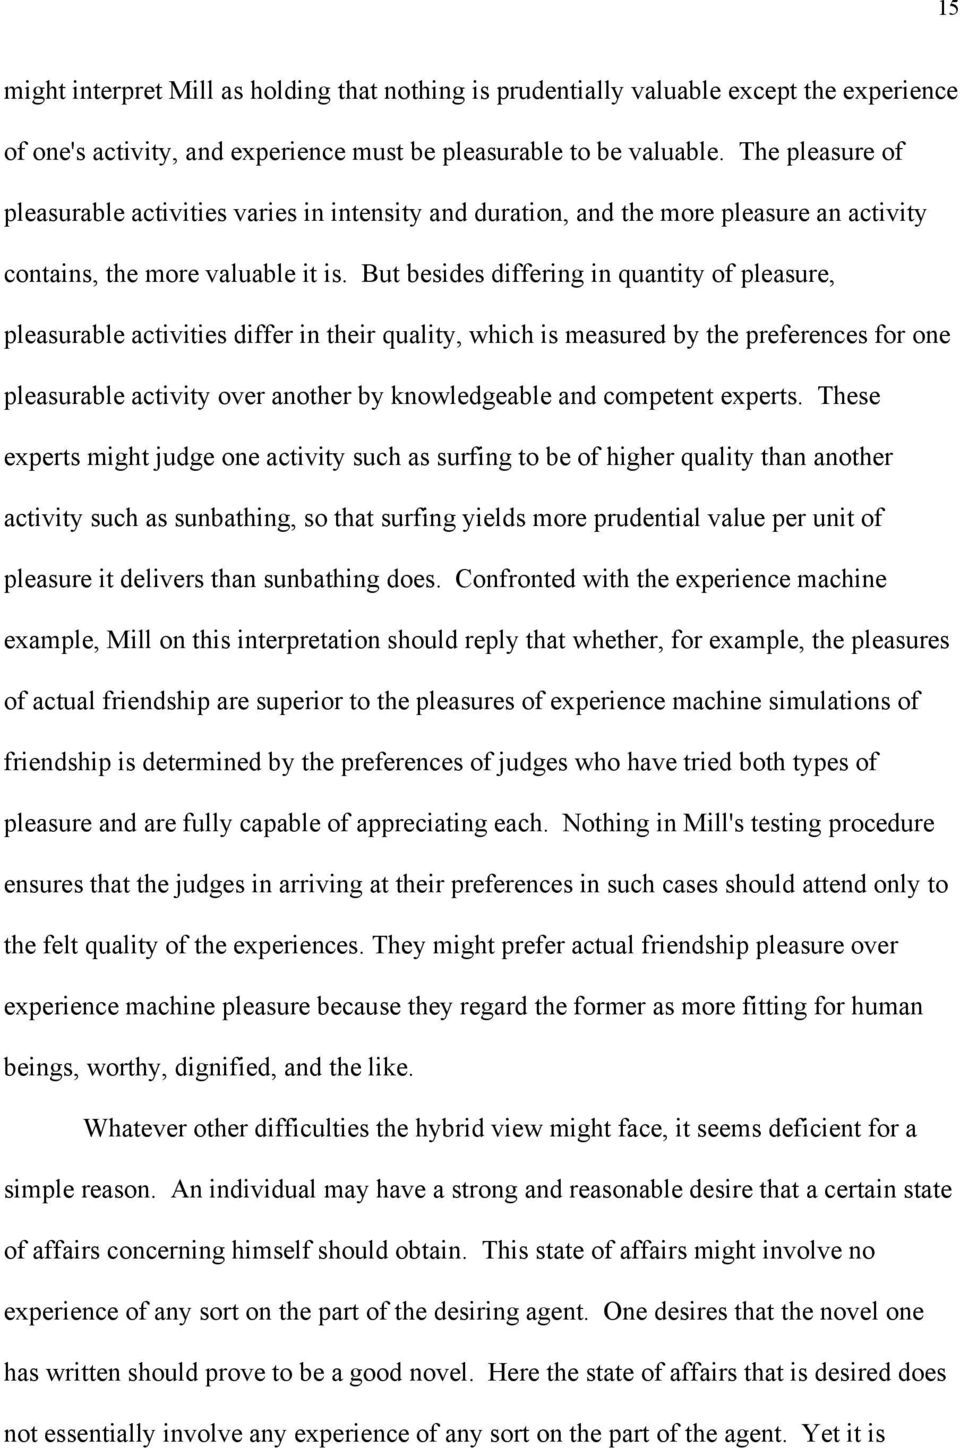 But besides differing in quantity of pleasure, pleasurable activities differ in their quality, which is measured by the preferences for one pleasurable activity over another by knowledgeable and